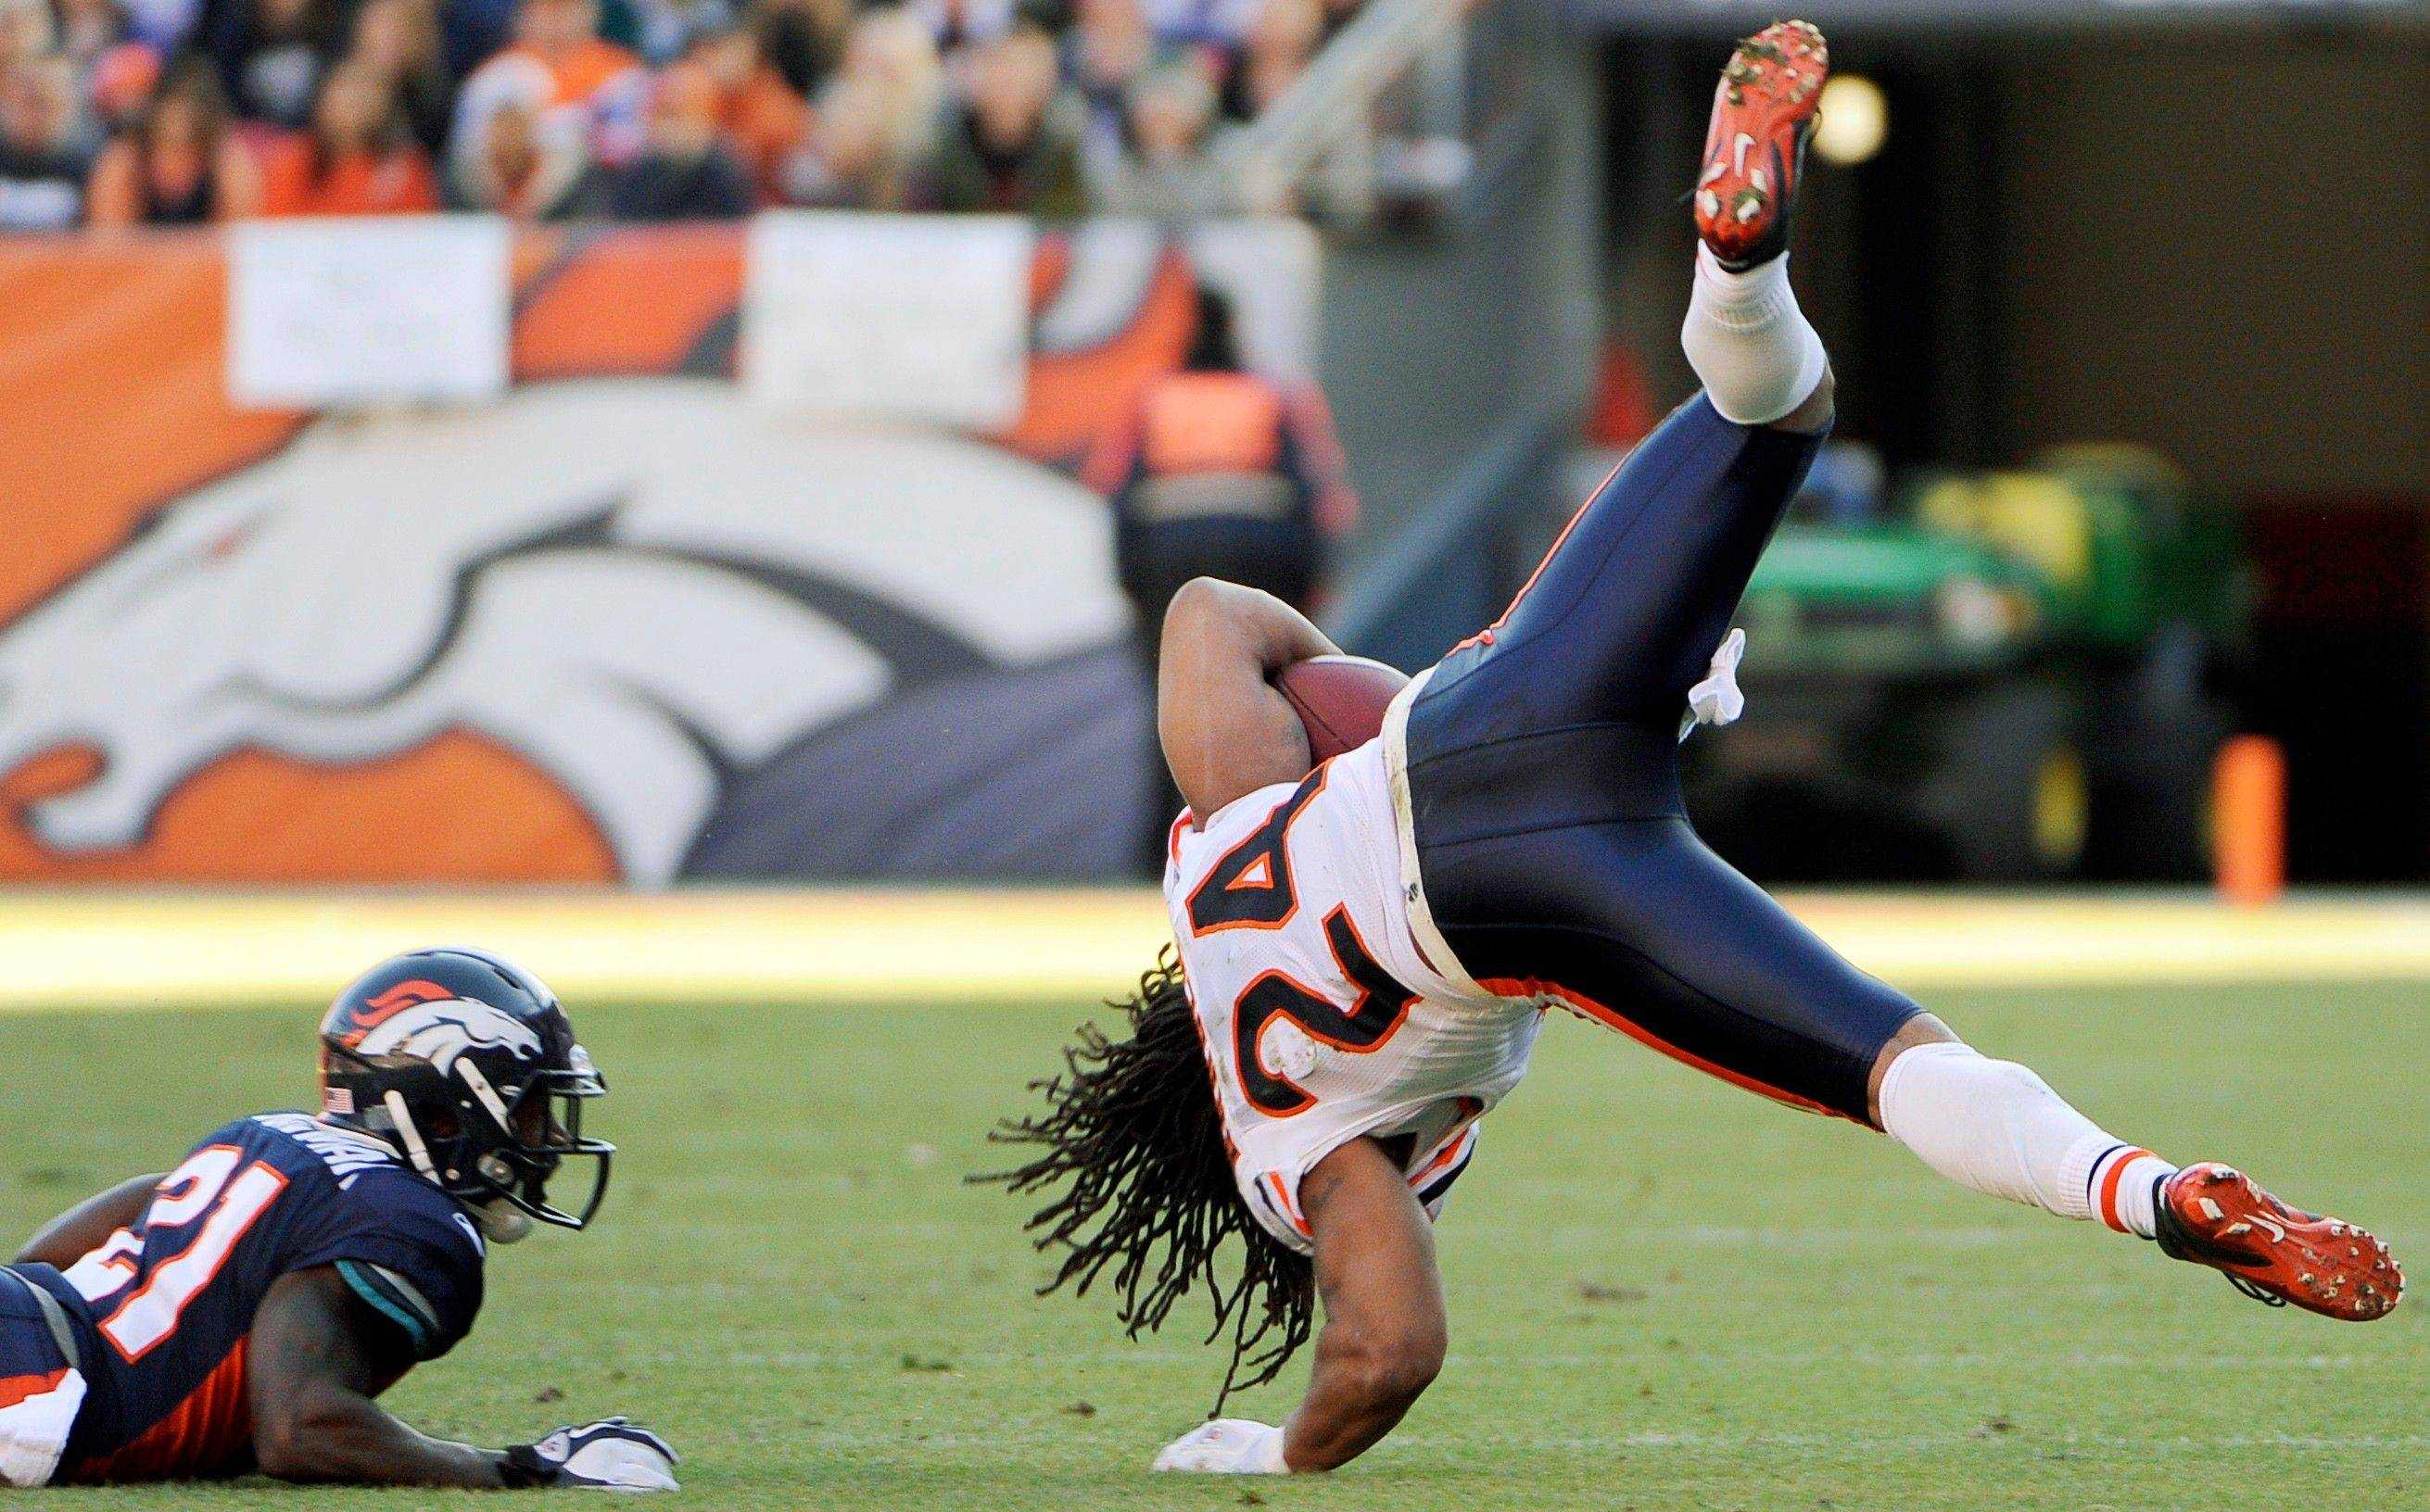 Broncos cornerback Andre' Goodman trips up Bears running back Marion Barber int the first quarter Sunday in Denver.